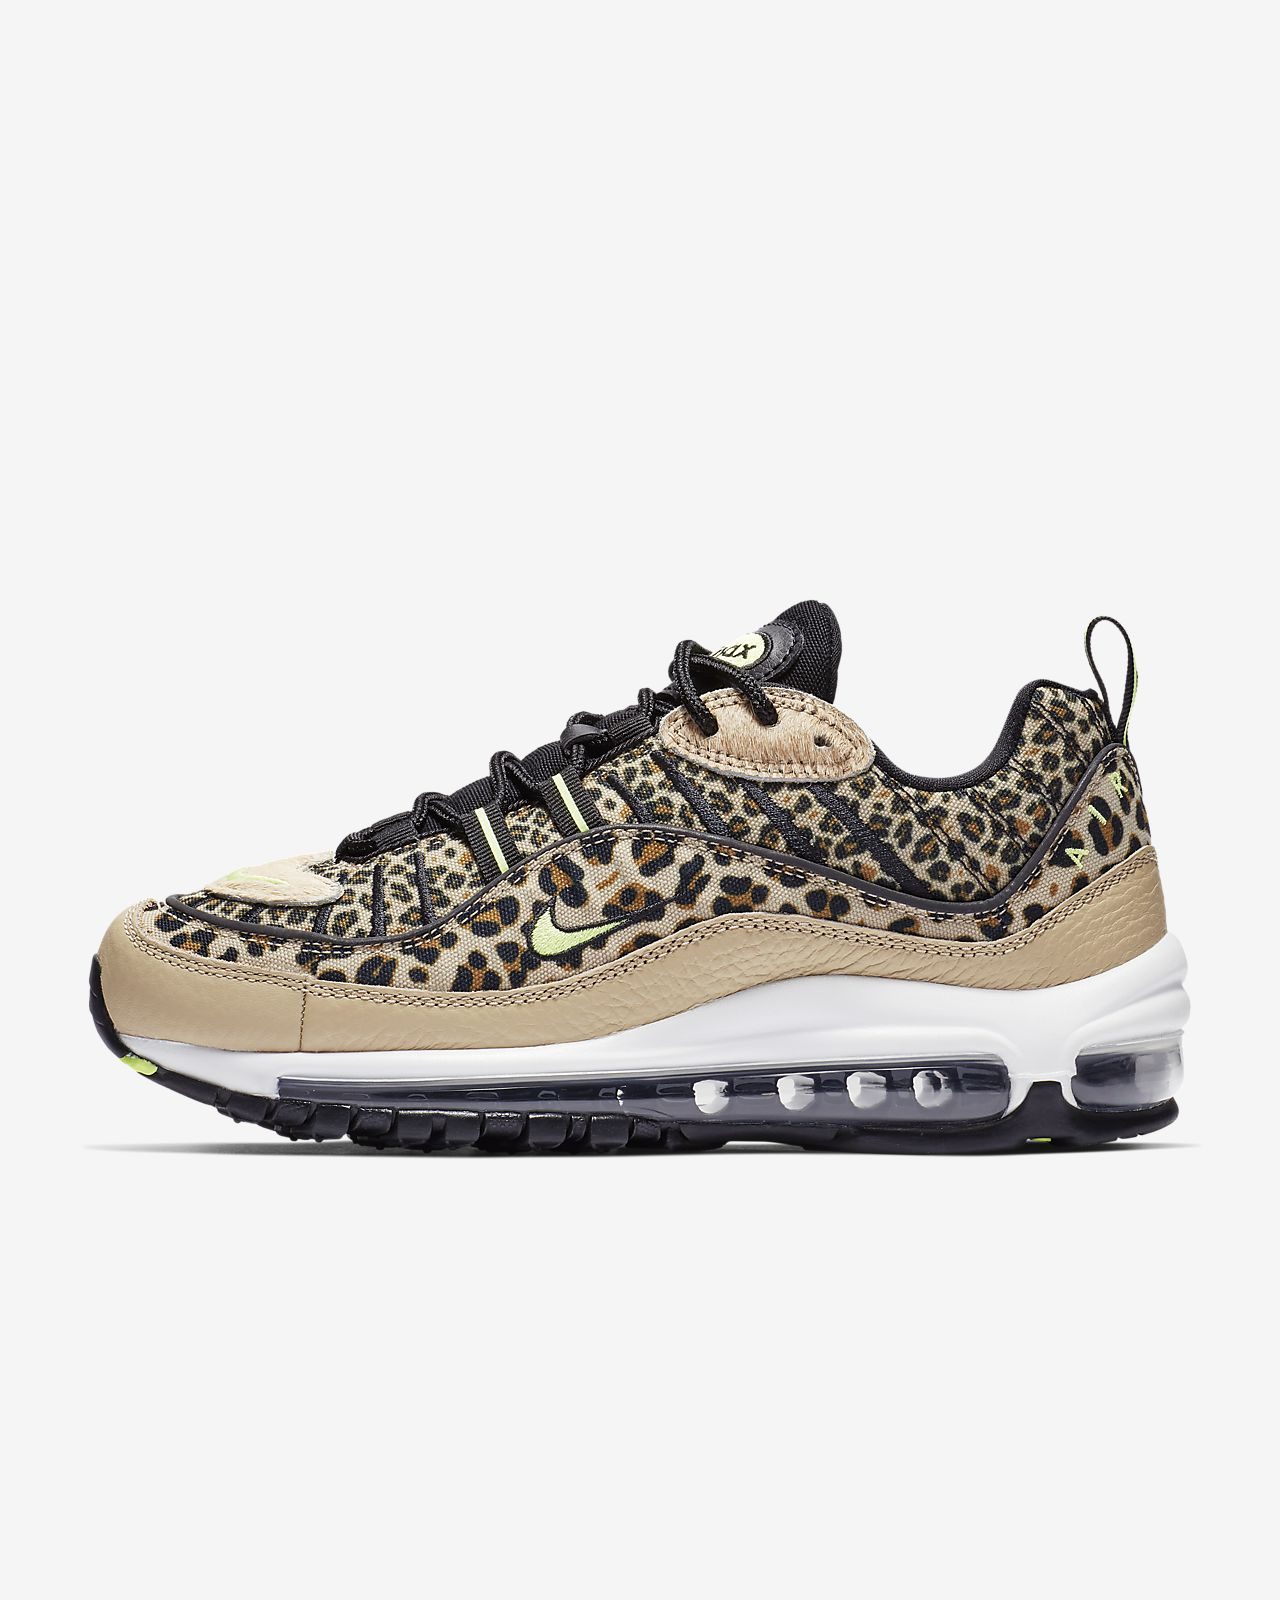 new concept eef3c eae73 ... Nike Air Max 98 Premium Animal Women s Shoe